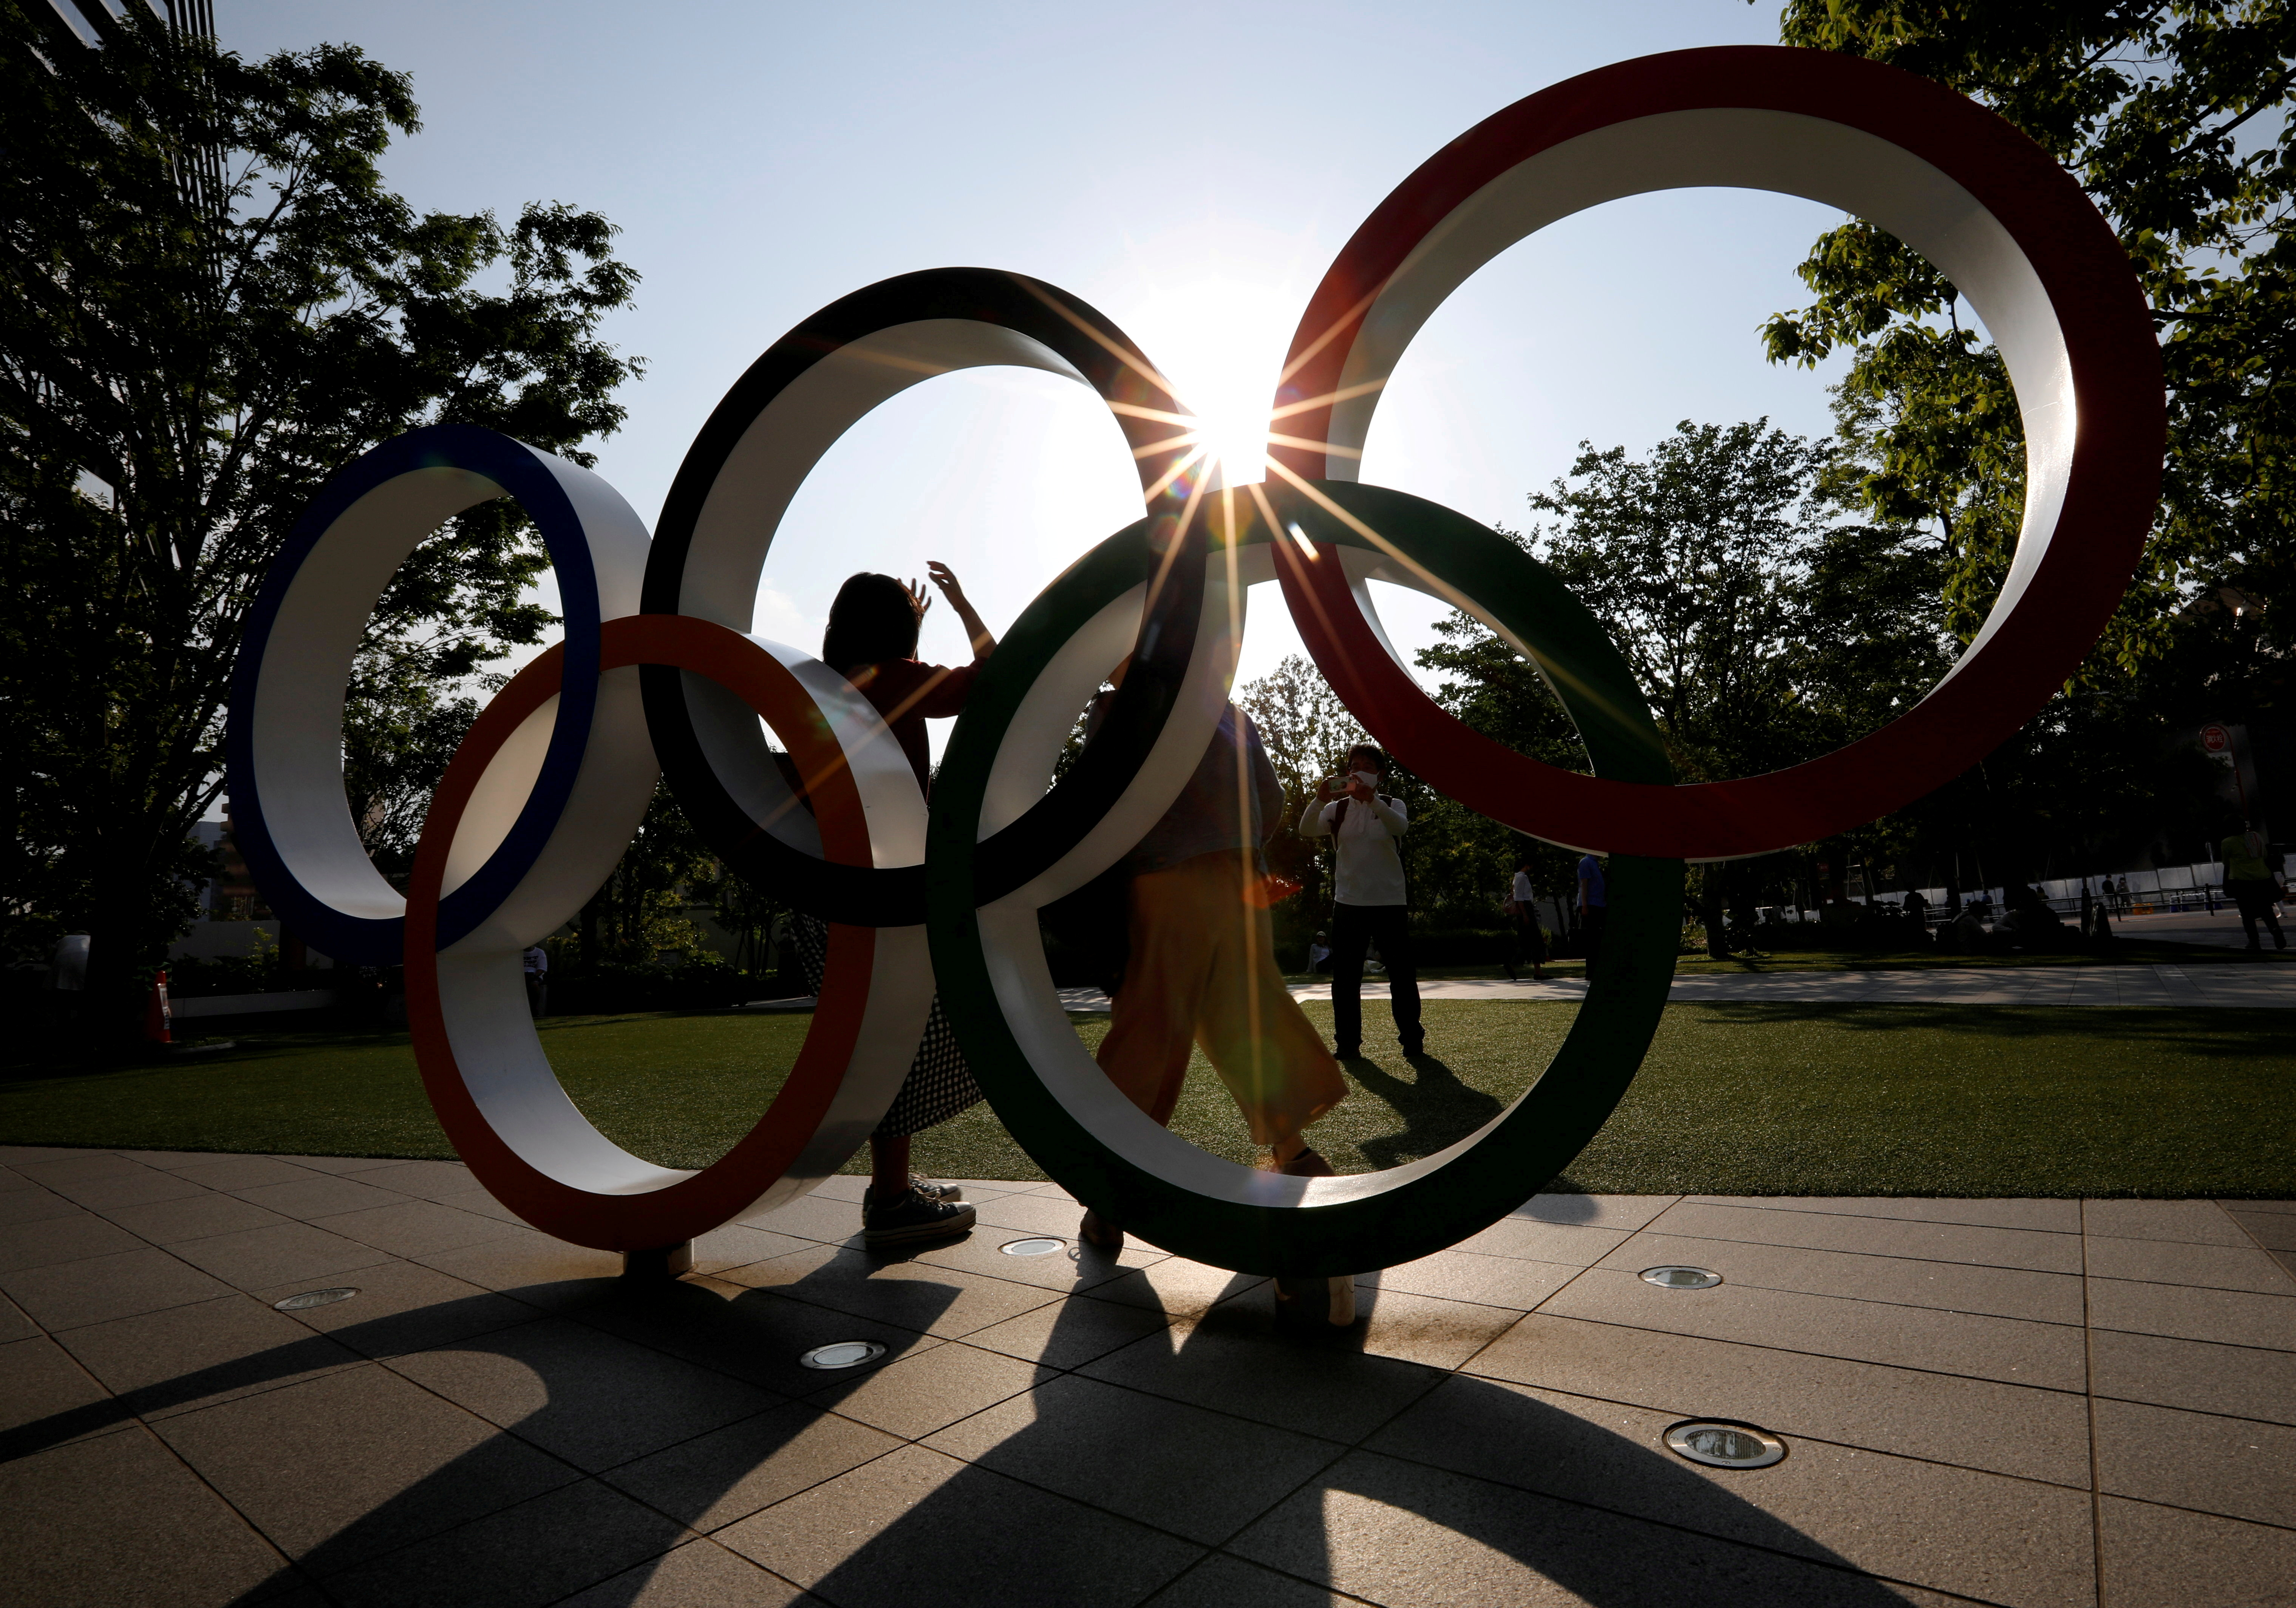 Visitors try to take photos in front of the Olympic Rings monument outside the Japan Olympic Committee (JOC) headquarters near the National Stadium, the main stadium for the 2020 Tokyo Olympic Games that have been postponed to 2021 due to the coronavirus disease (COVID-19) outbreak, in Tokyo, Japan May 30, 2021.  REUTERS/Issei Kato/File Photo